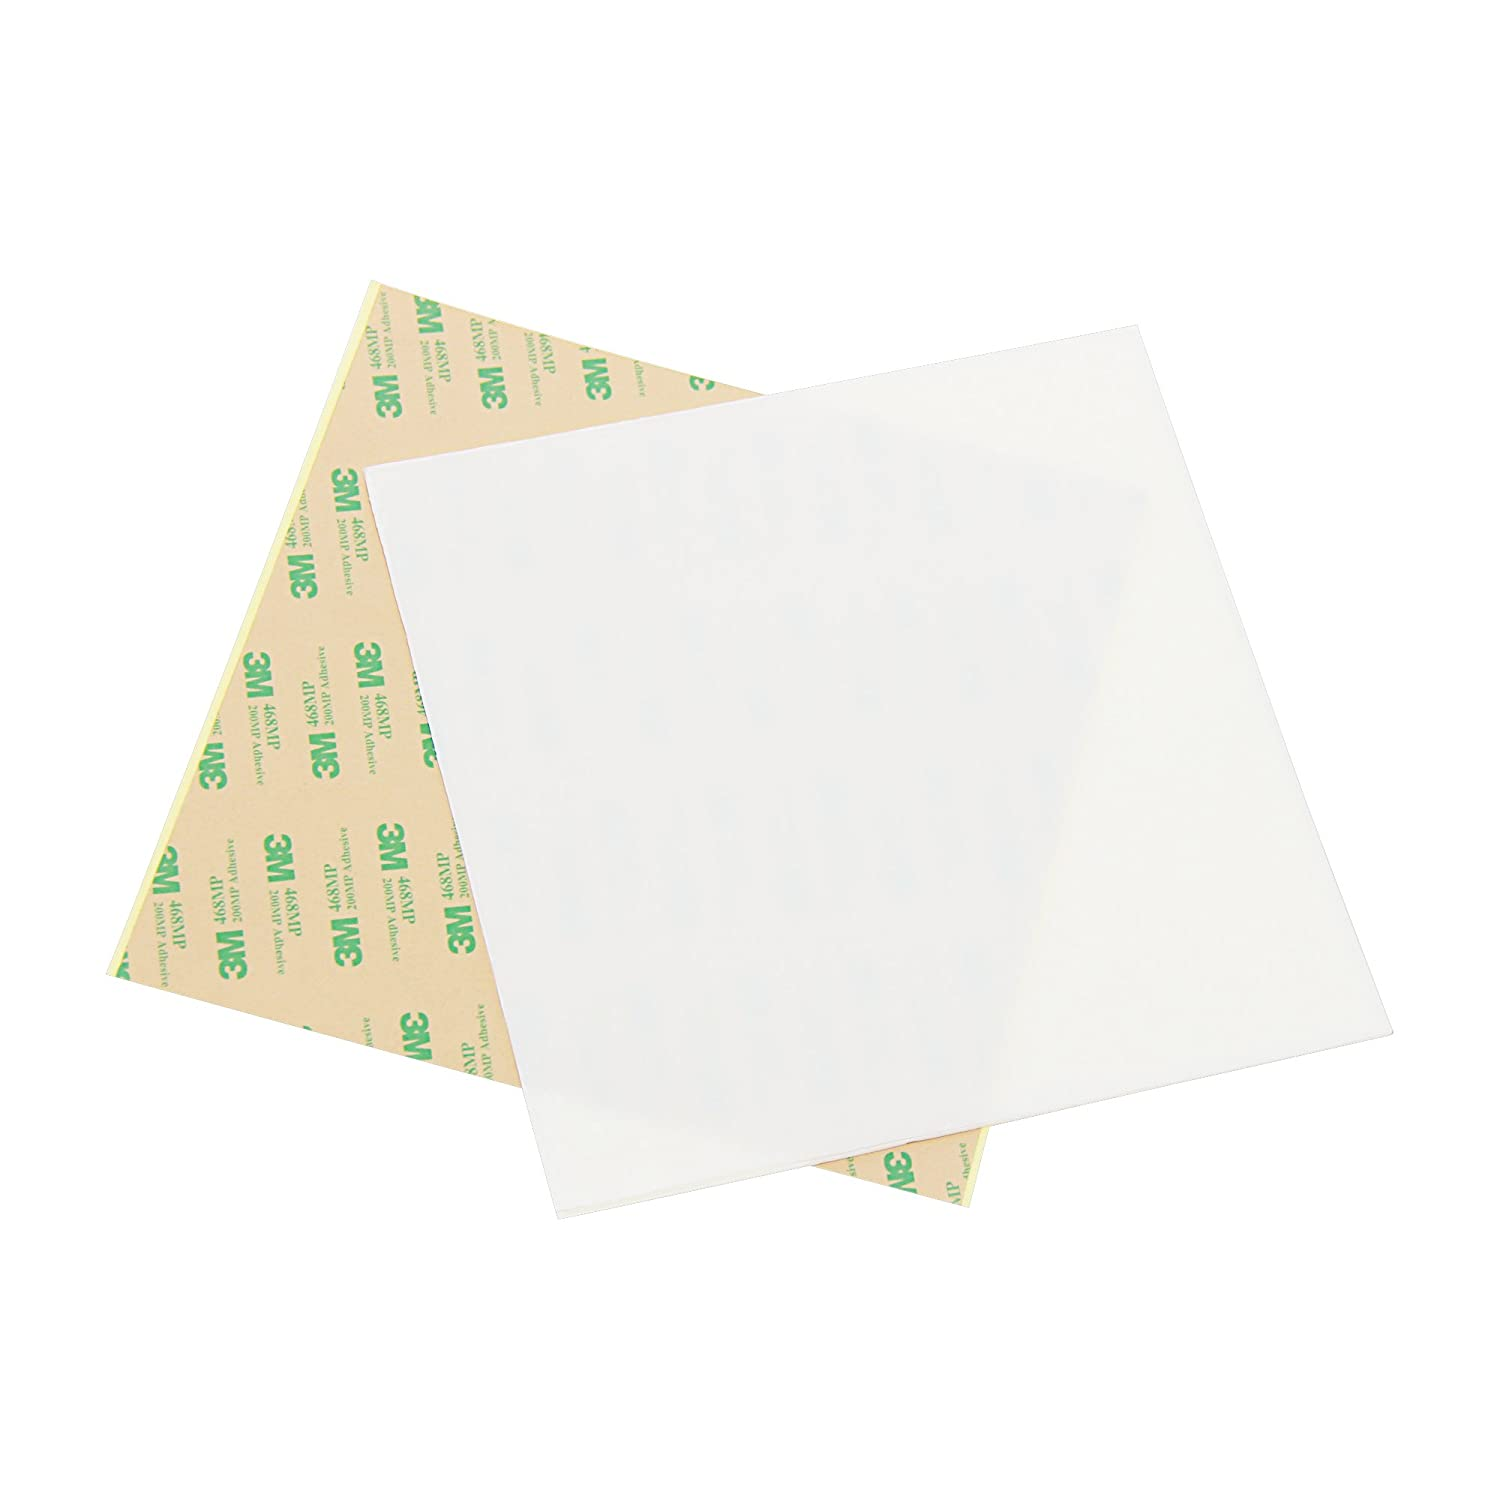 Multiple Sizes Available 8x8,0.8mm thick Wisamic PEI Sheet for 3D Printing with 3M 468MP Adhesive Tape